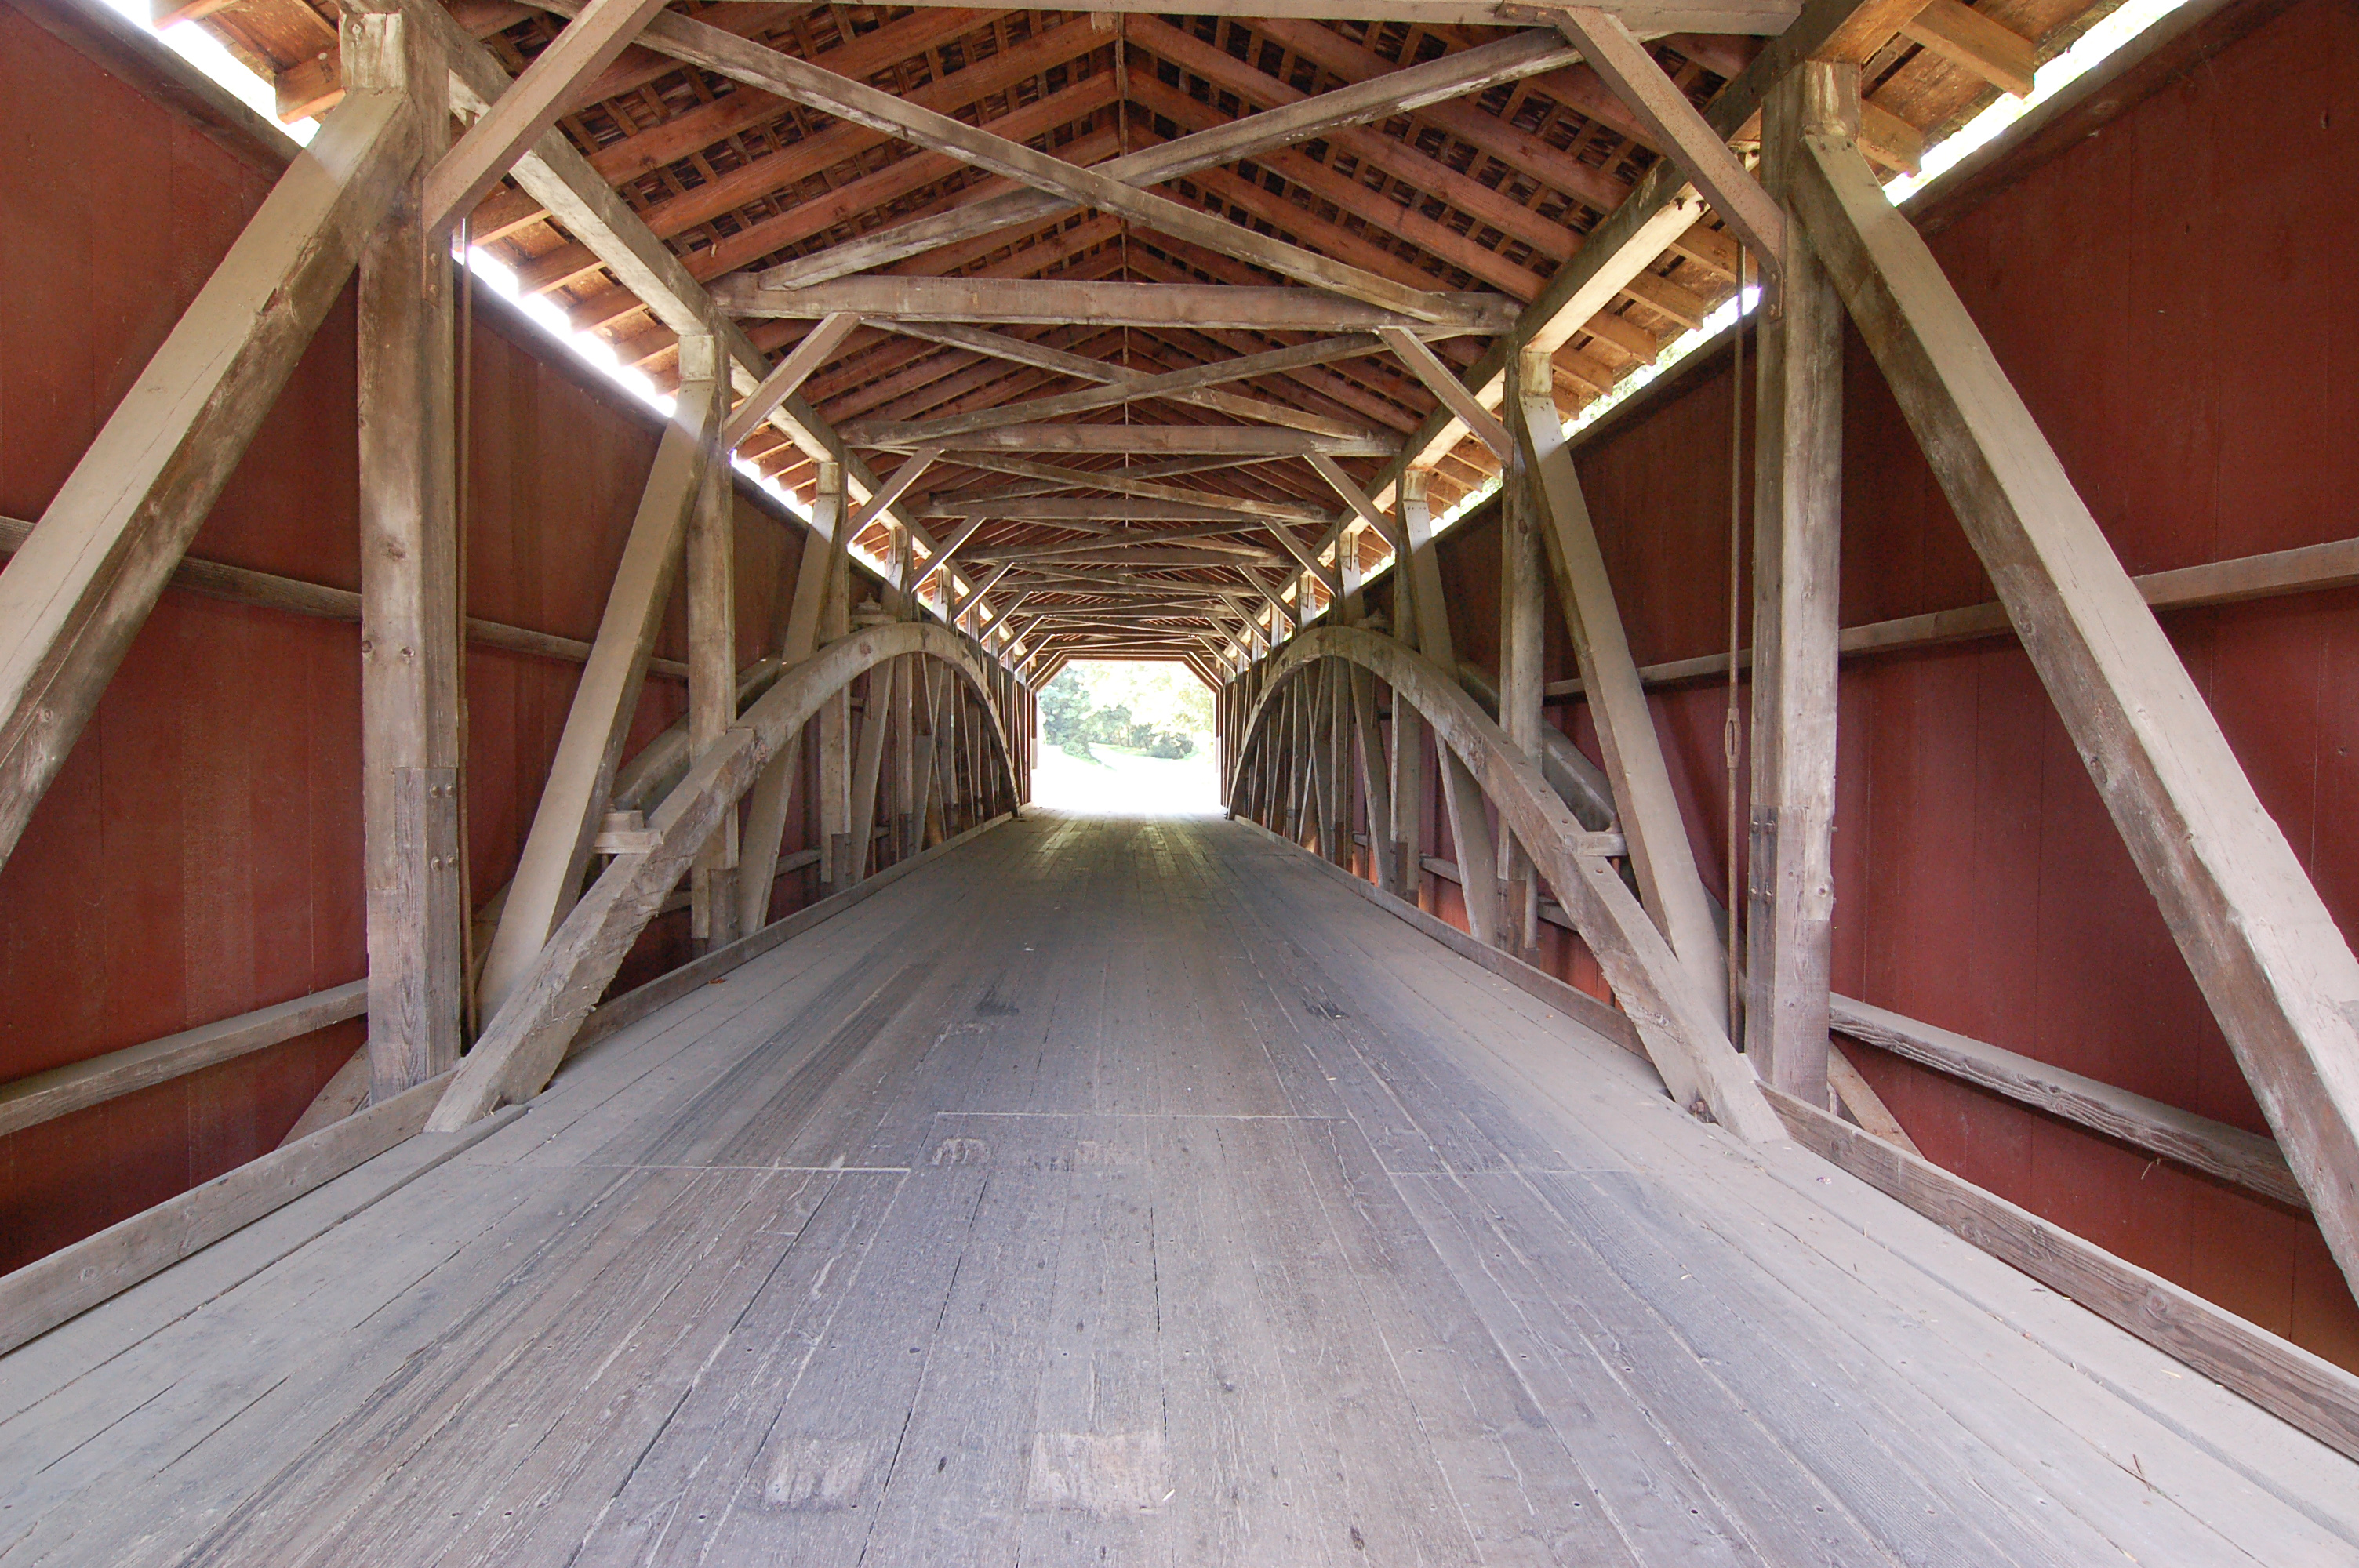 baumgardeners_covered_bridge_inside_center_3008px